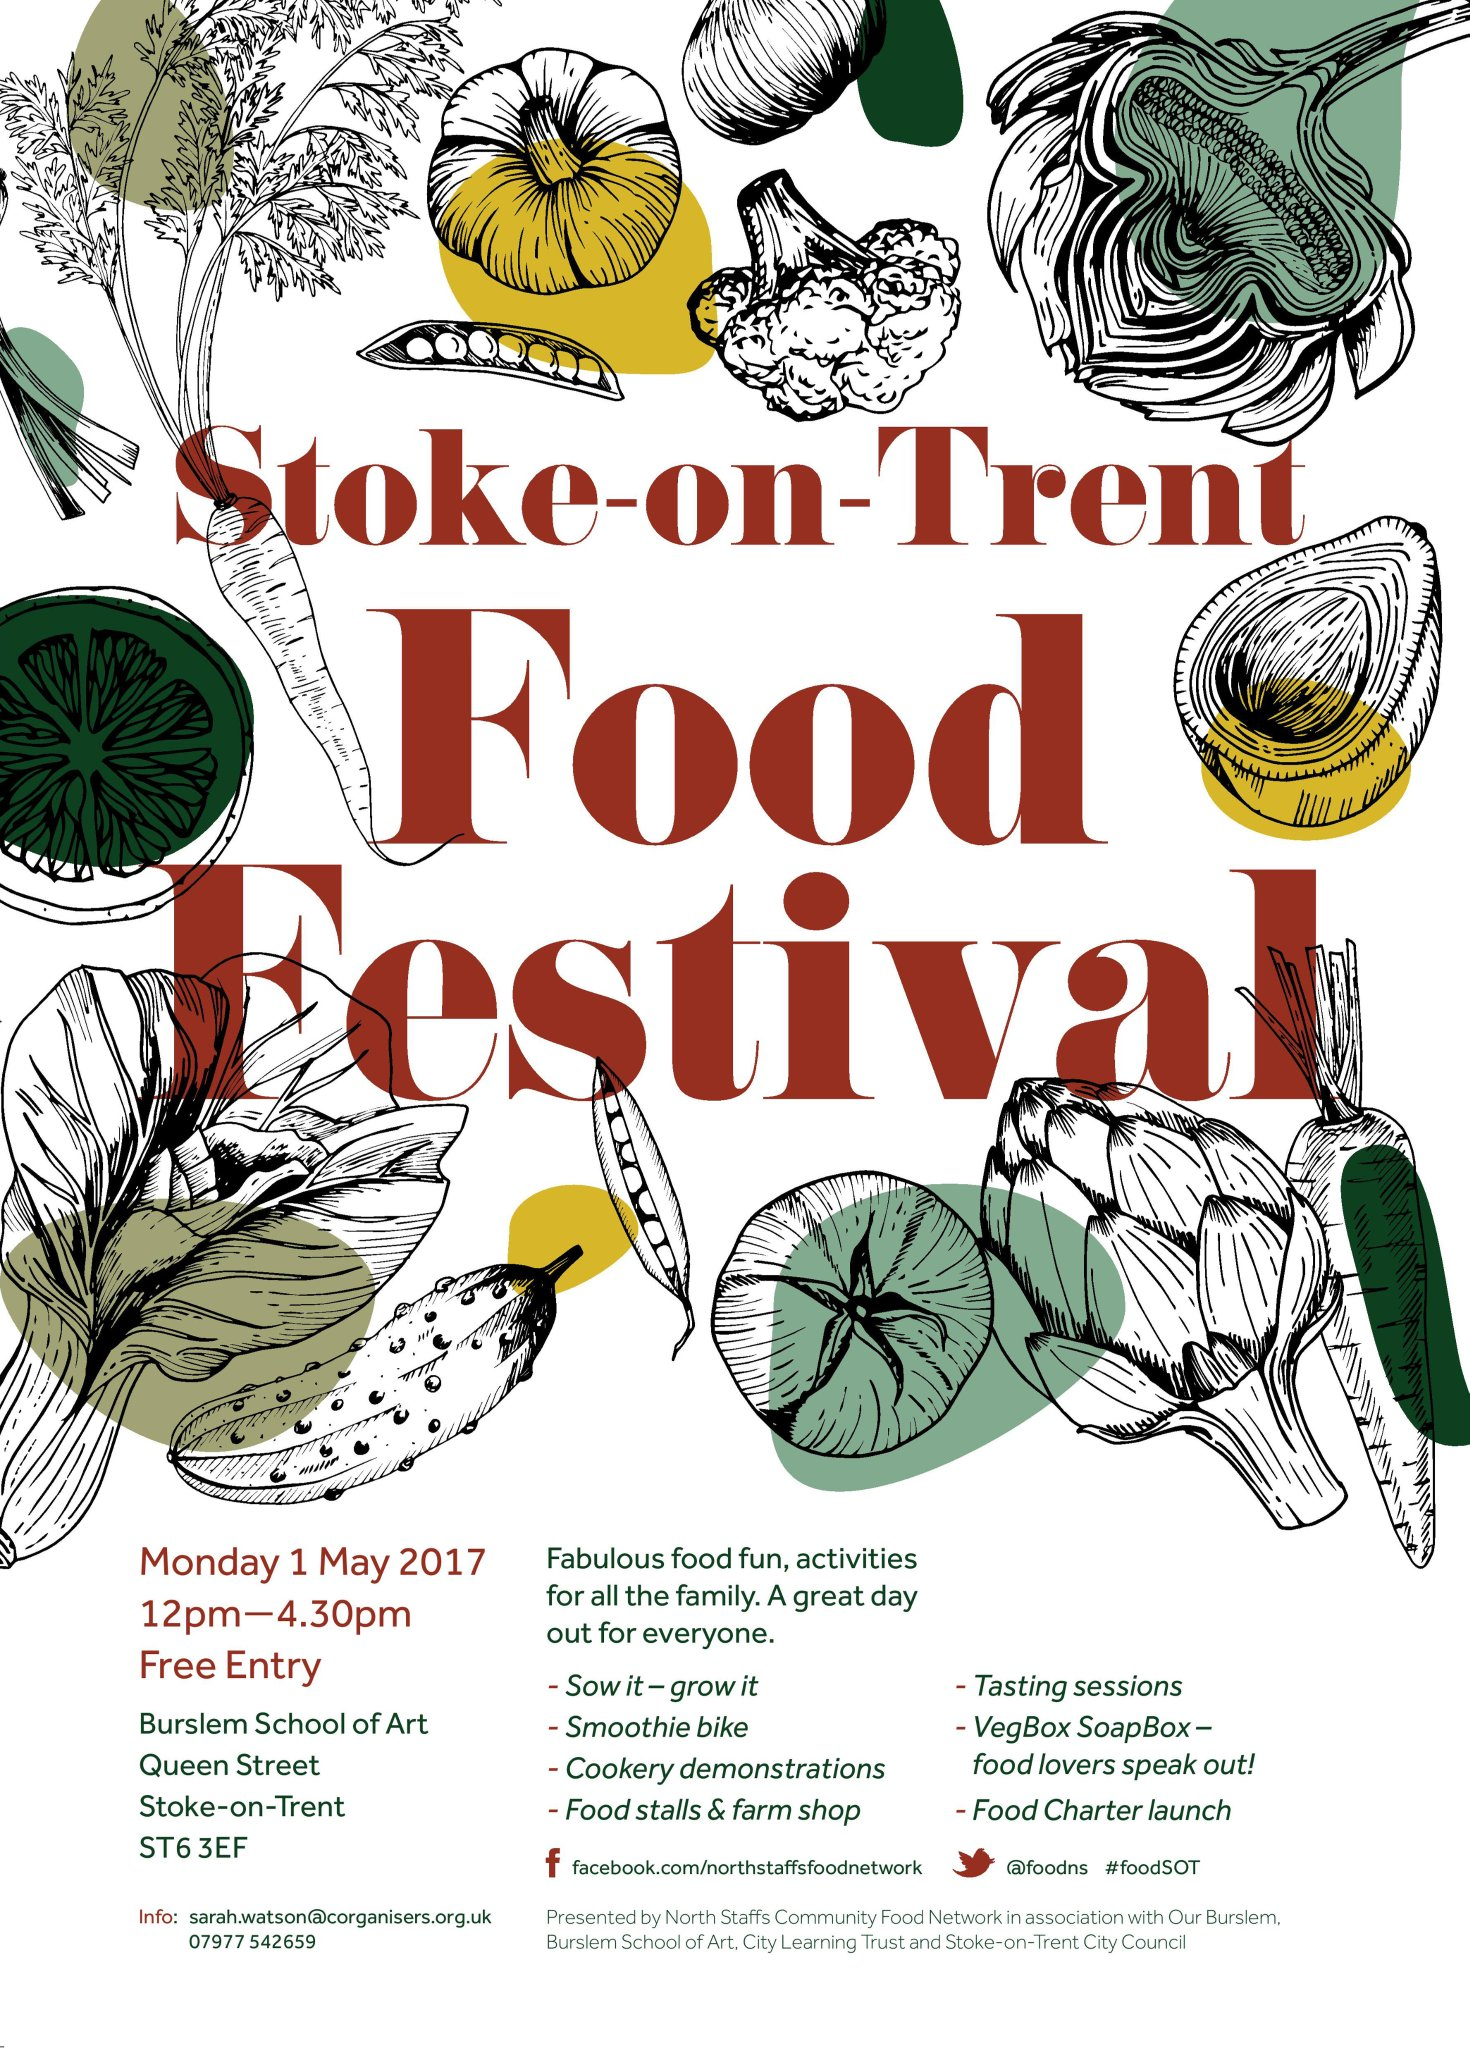 Stoke-on-Trent-Food-Festival-Staffordshire